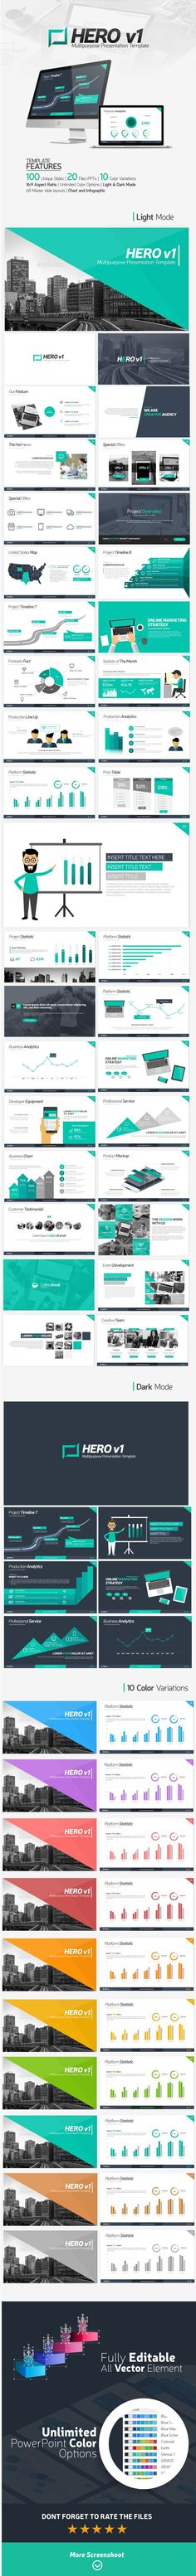 powerpoint | decks, presentation templates and powerpoint, Modern powerpoint